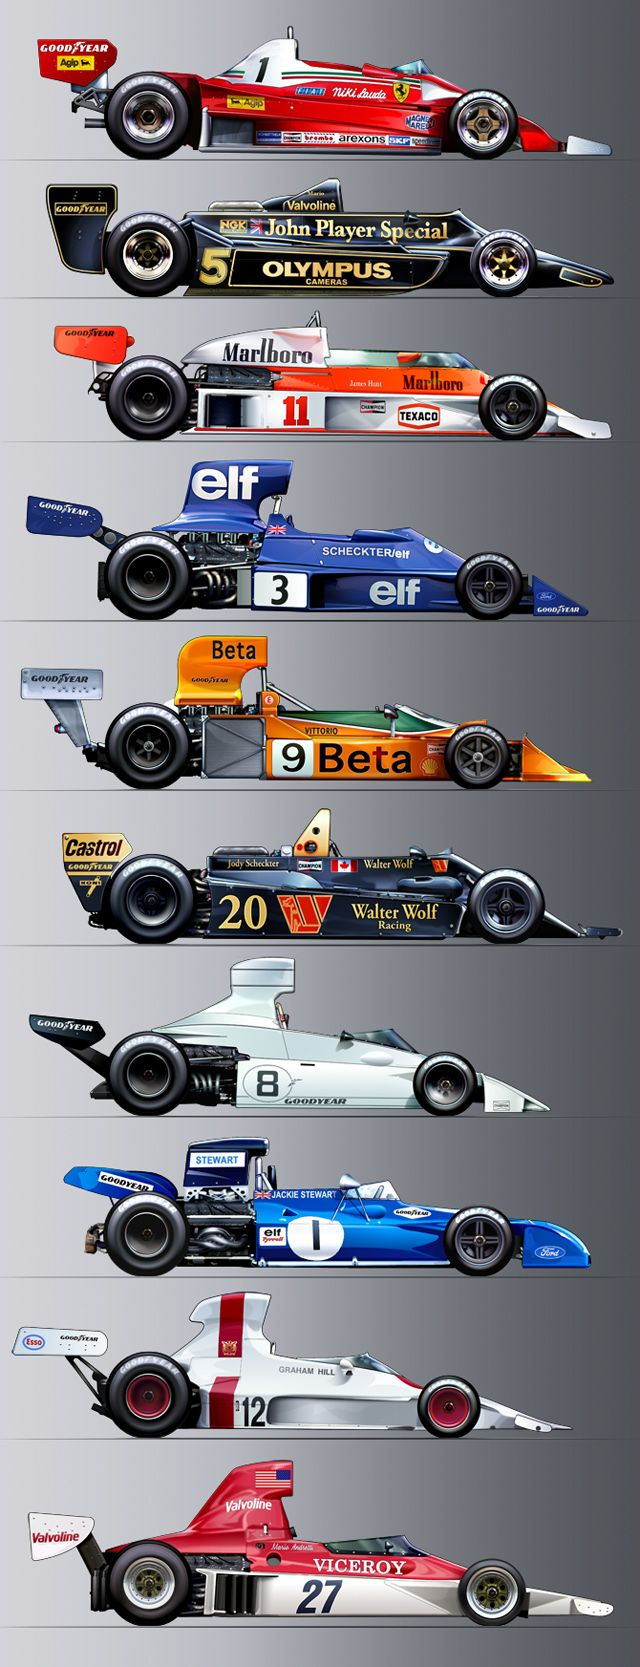 Formula 1 Race Car Illustrations - Technical Illustration - Jim Hatch Illustration: